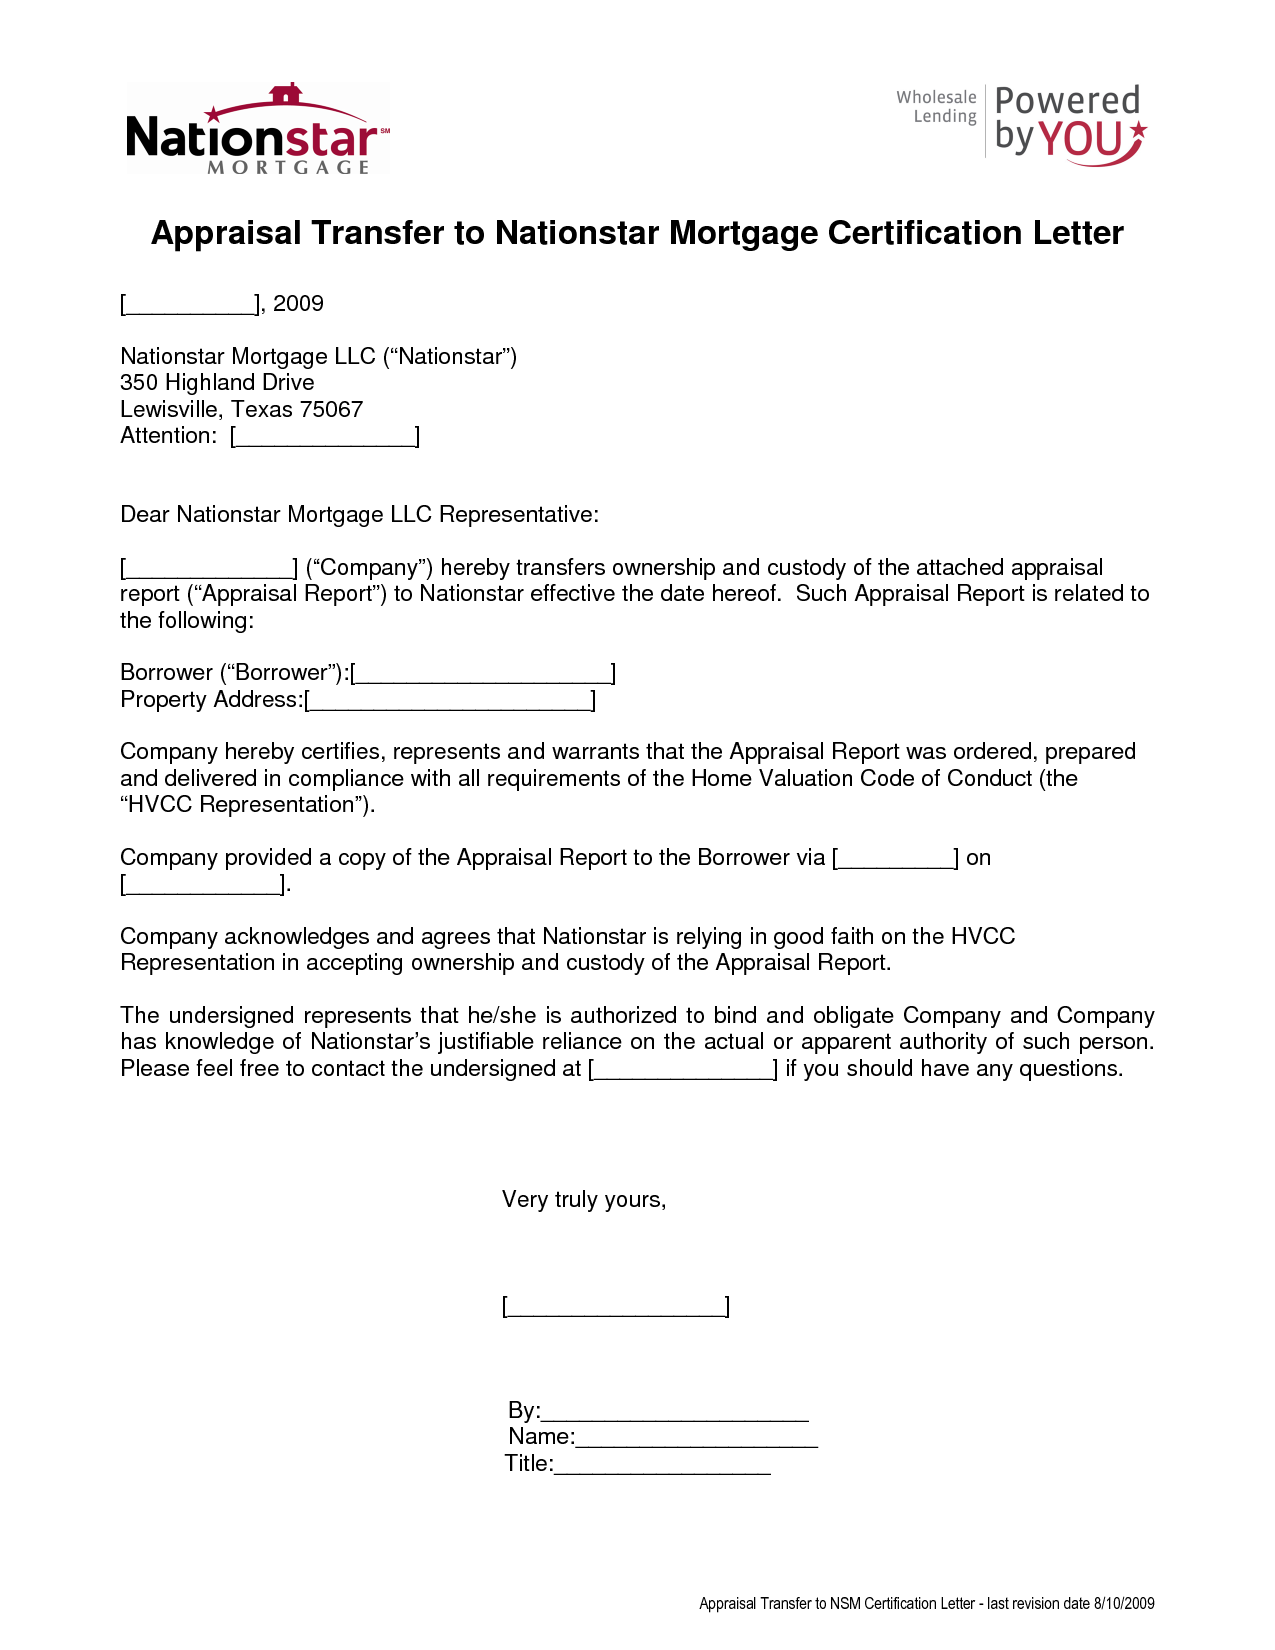 6 Best Images Of Transfer Of Ownership Letter With Exhibit News To